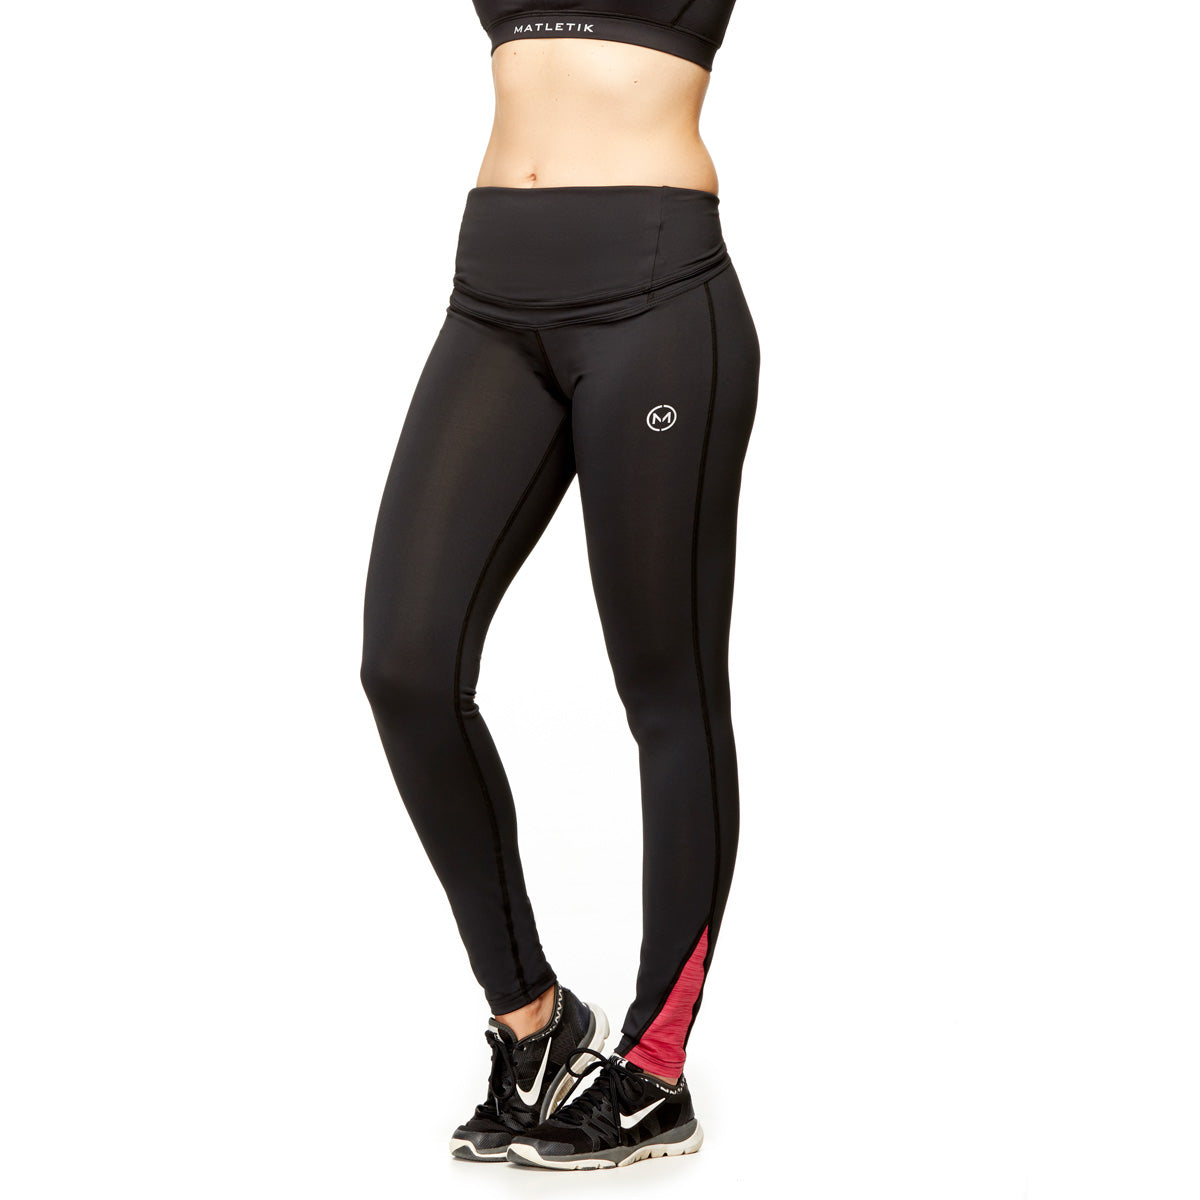 KARMA LEGGING - Active full length with fold over panel